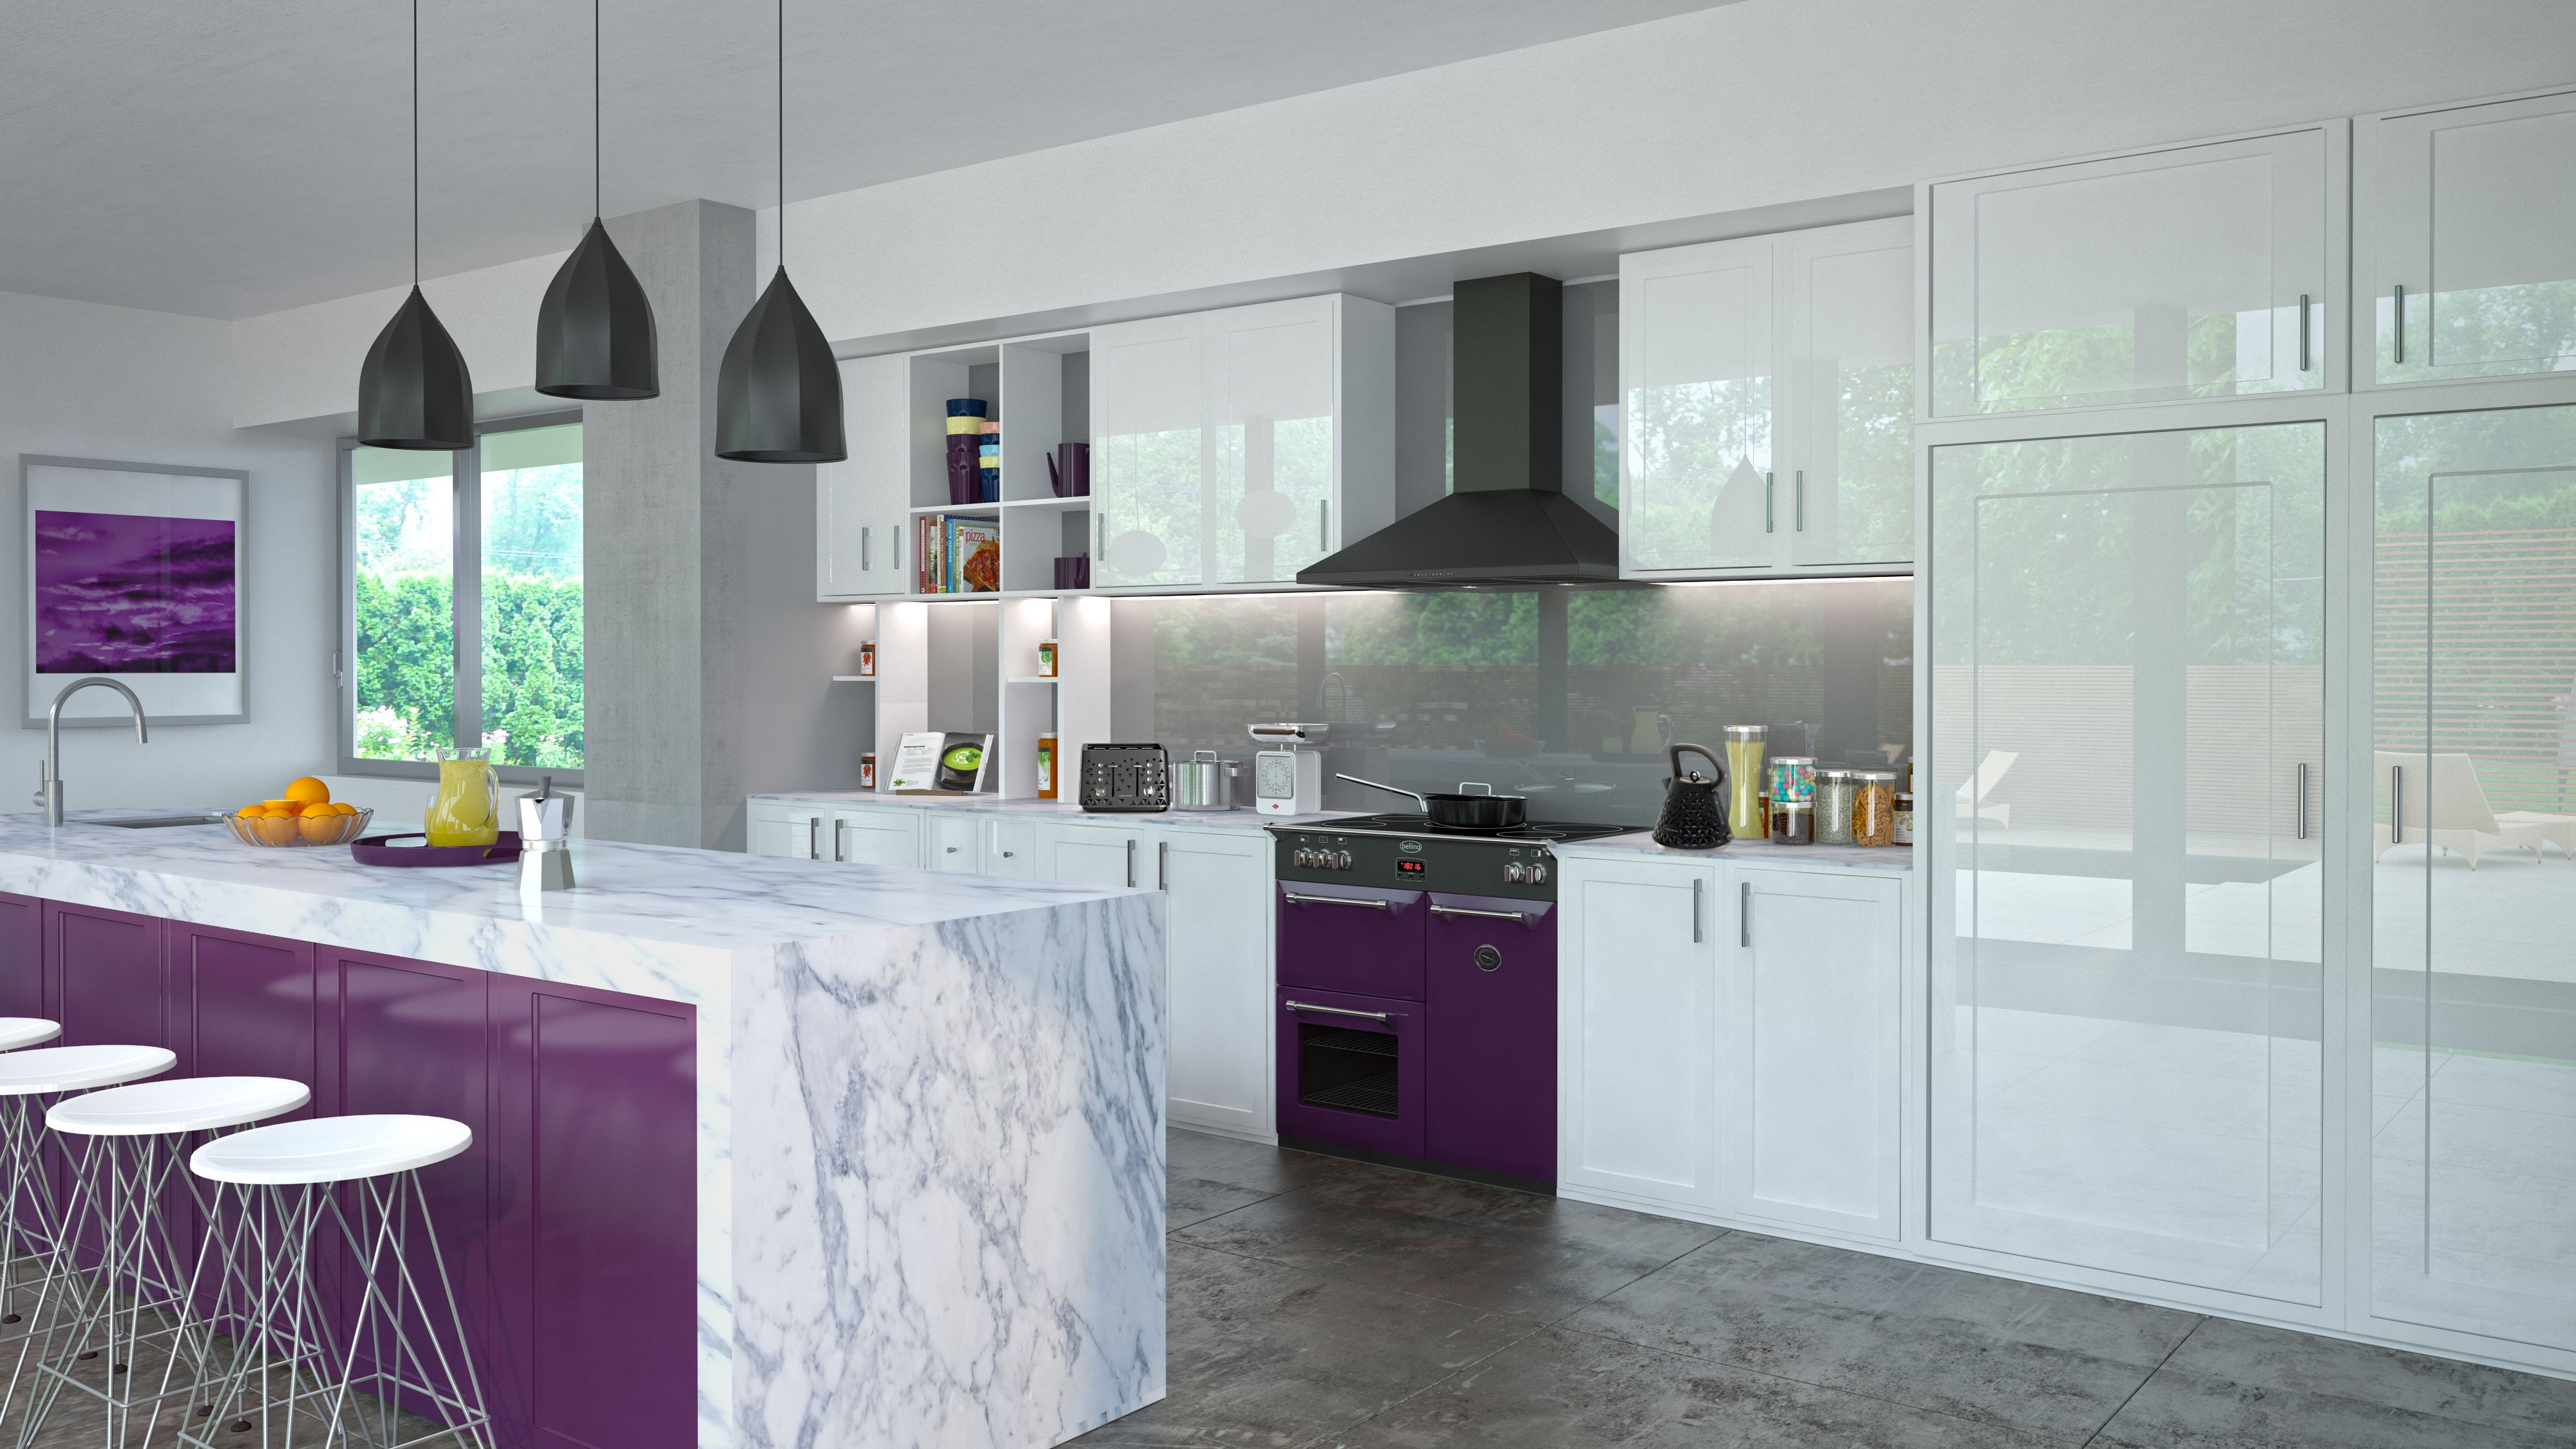 Give Your Kitchen A Lovely Purple Tinge With Premium Appliances,